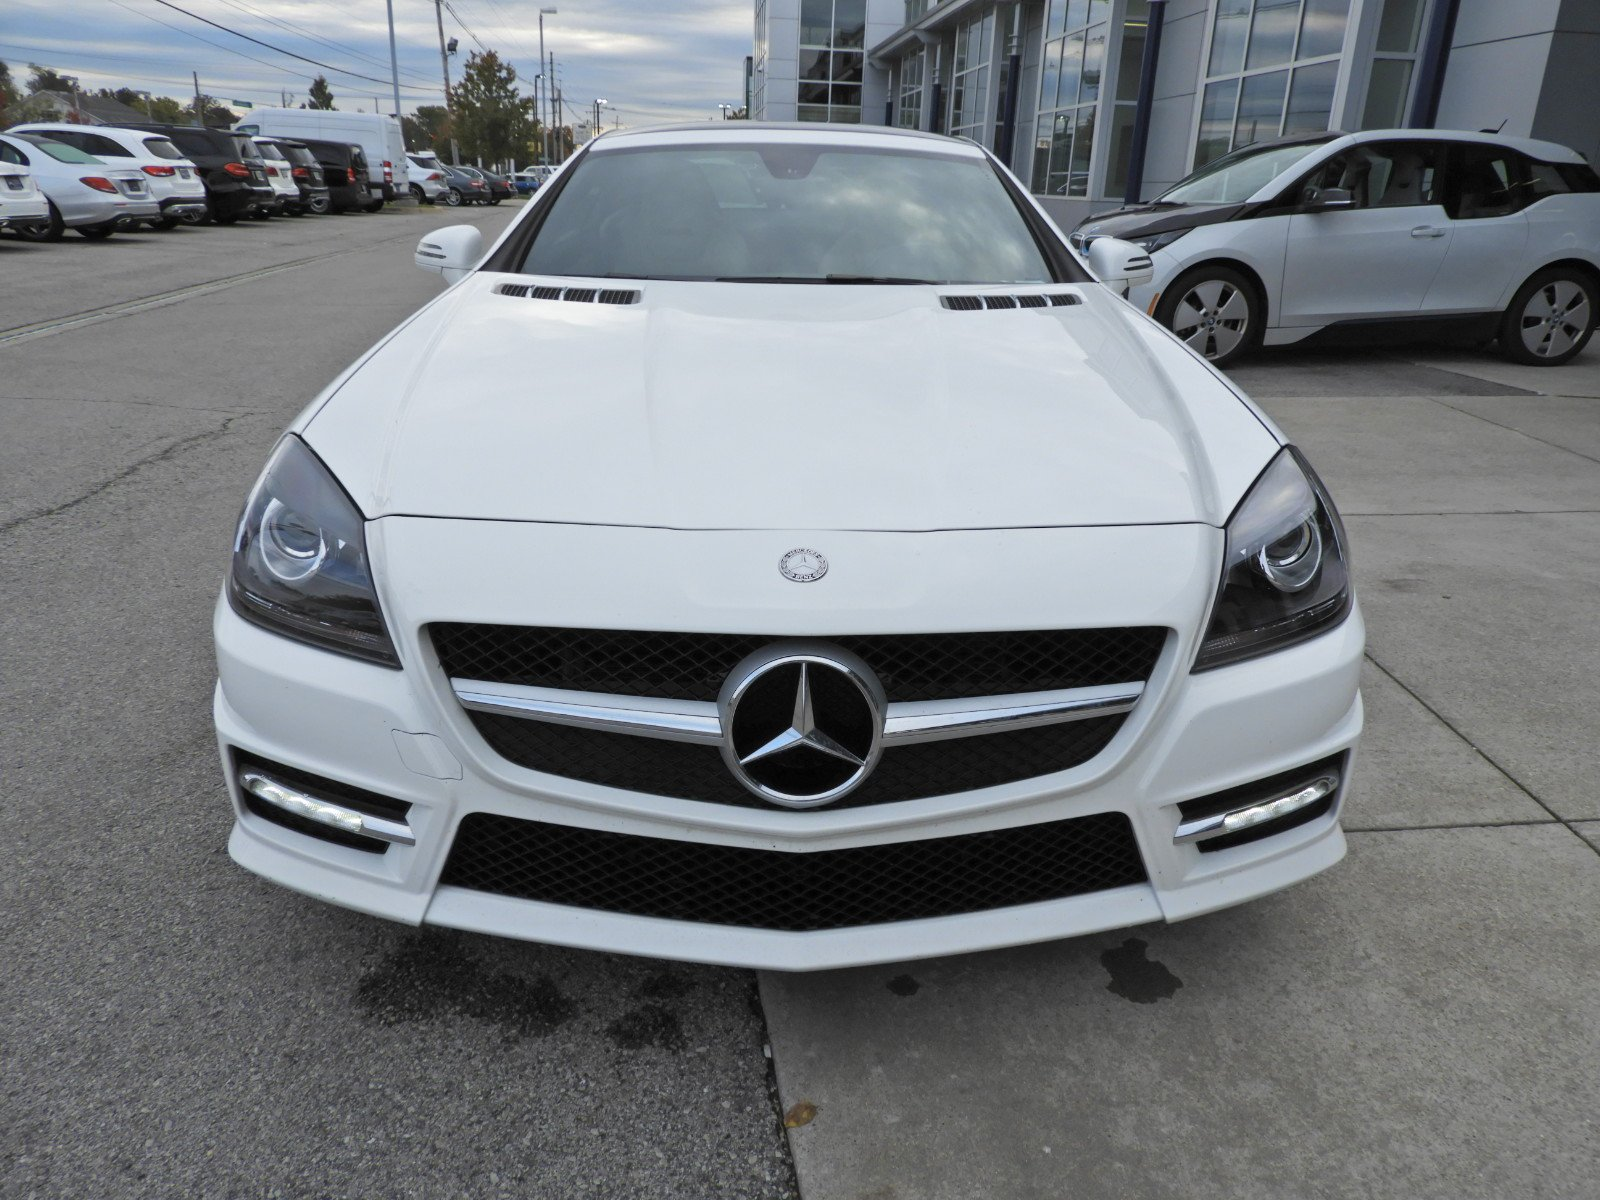 Certified Pre Owned 2015 Mercedes Benz SLK SLK 250 Roadster